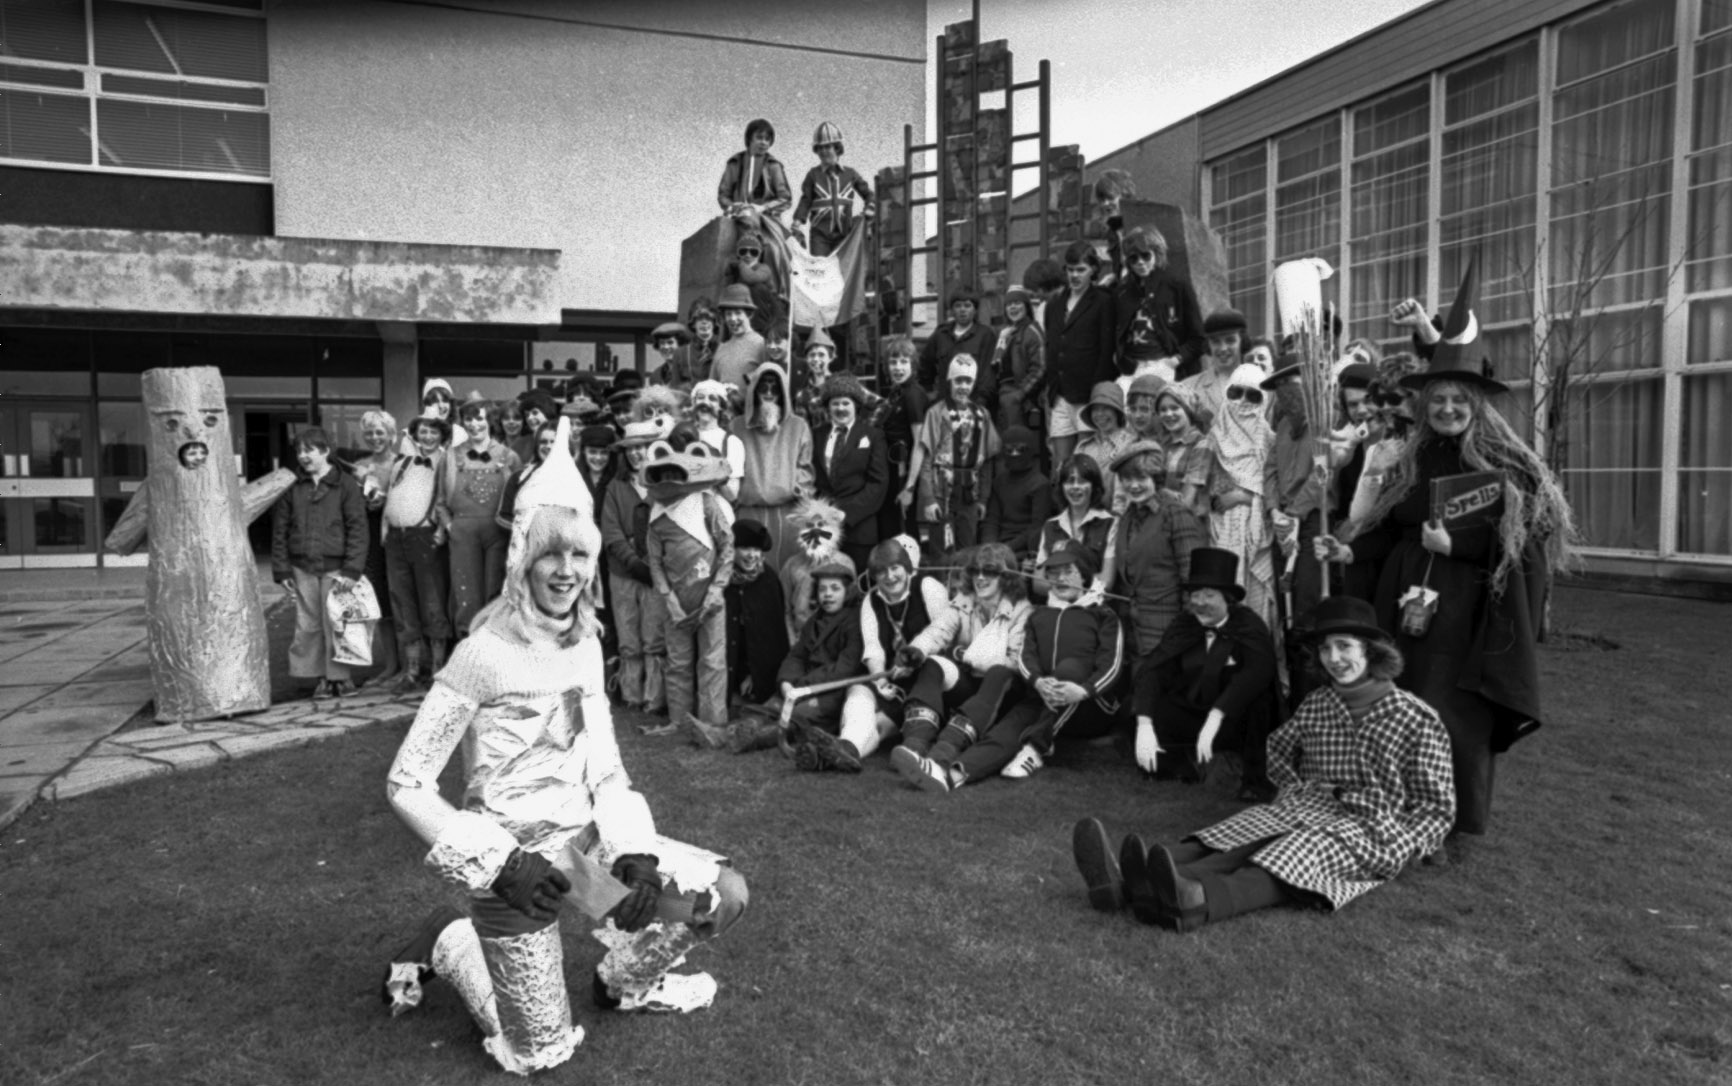 """A """"Dress As You Please"""" day at Mackie Academy, Stonehaven, based on The Wizard of Oz. in 1979"""